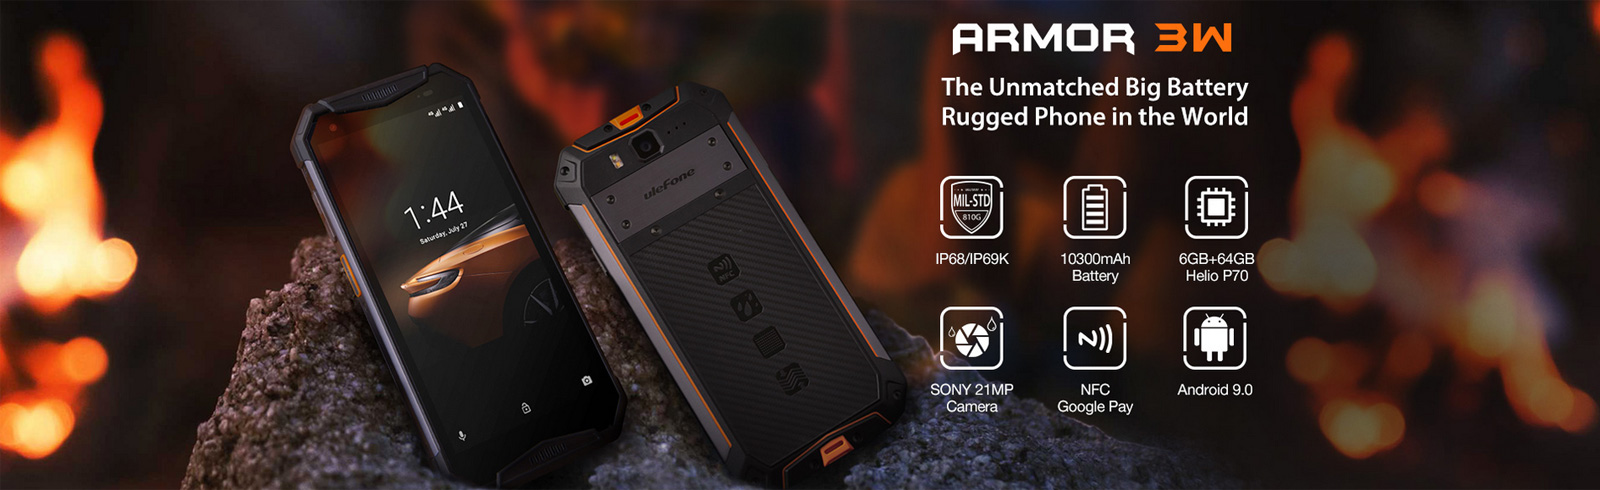 Ulefone Armor 3W and Armor 3WT are unveiled